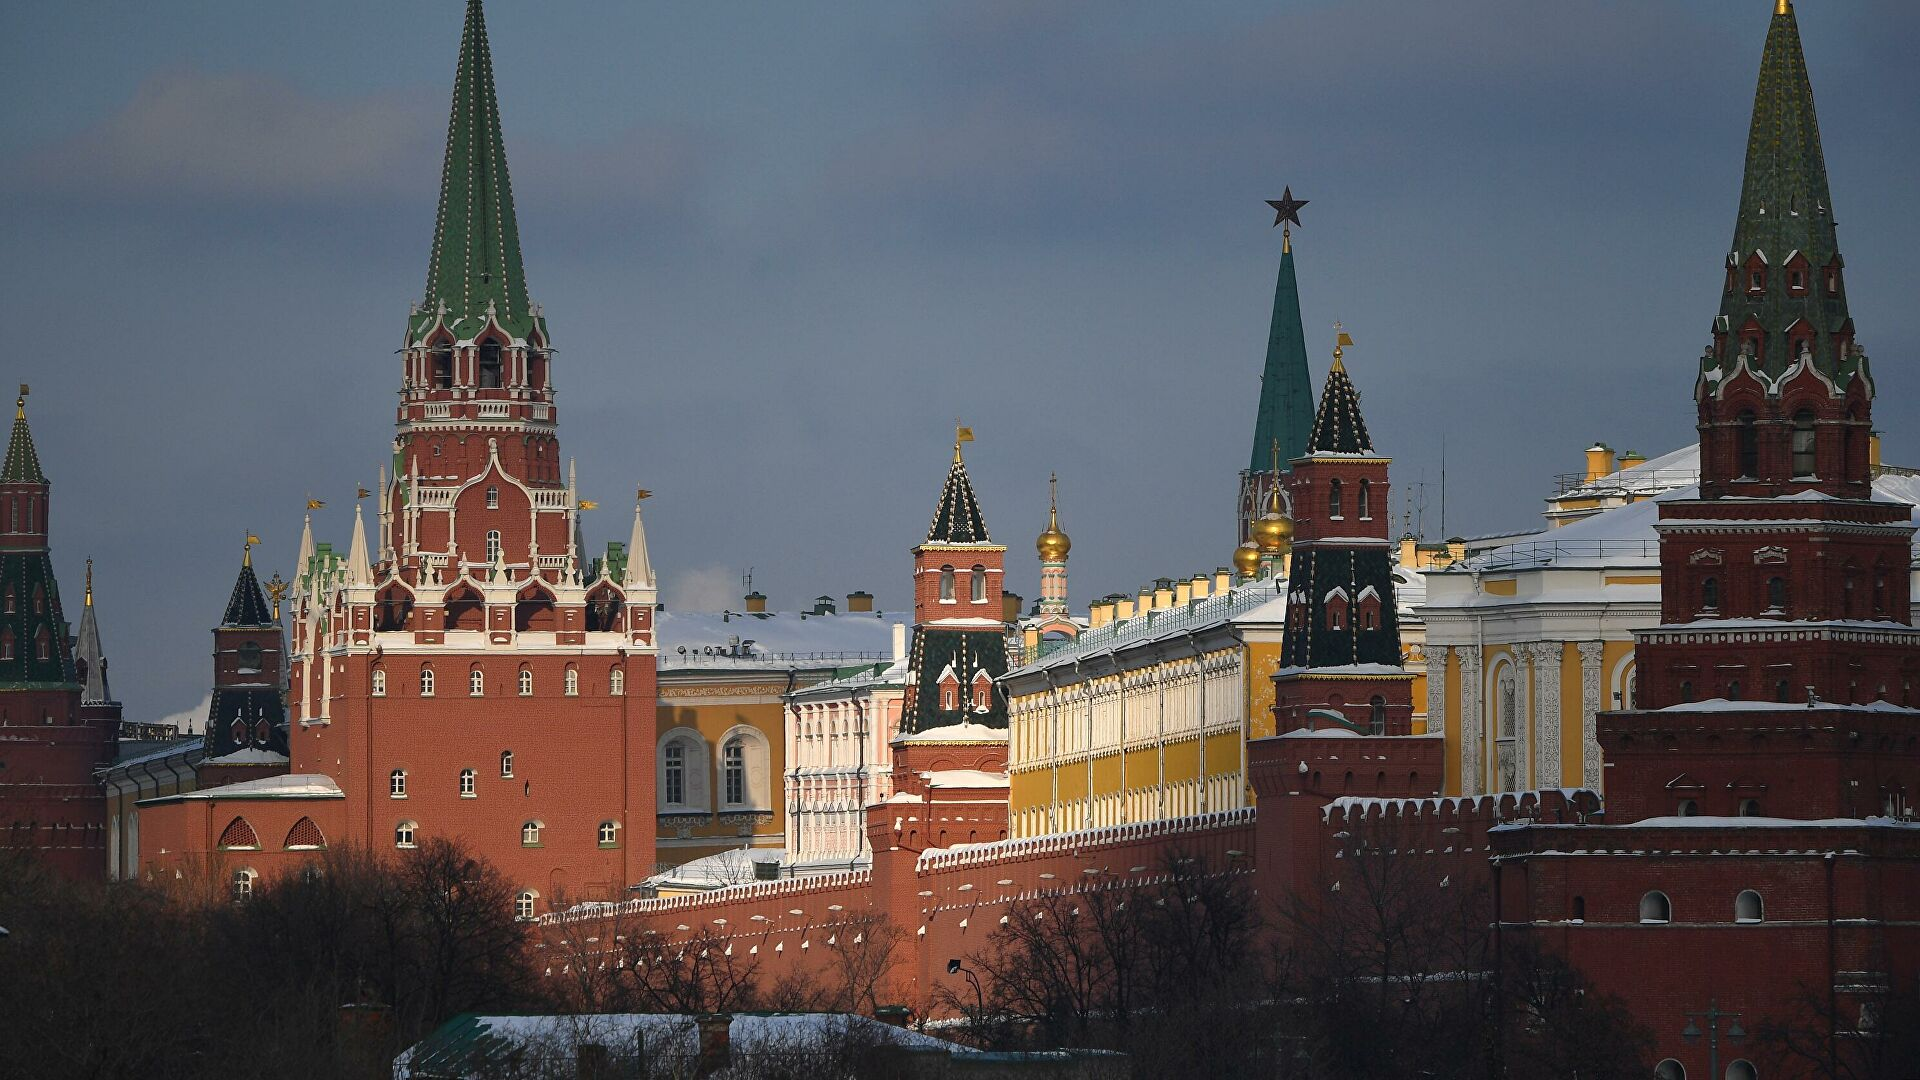 Kremlin tells about working contacts with U.S.